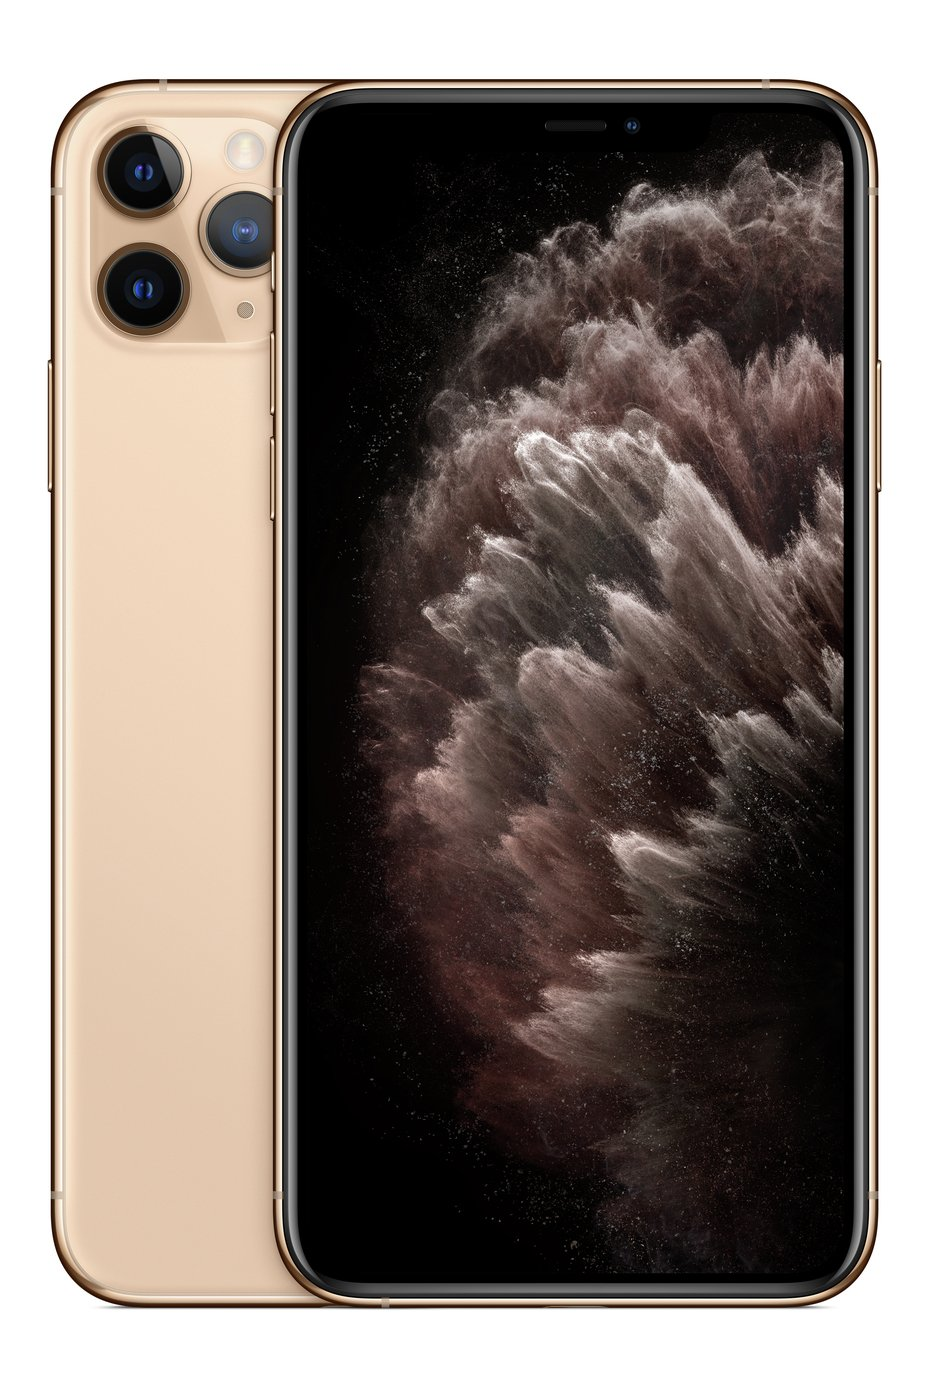 SIM Free iPhone 11 Pro Max 64GB Mobile Phone - Gold